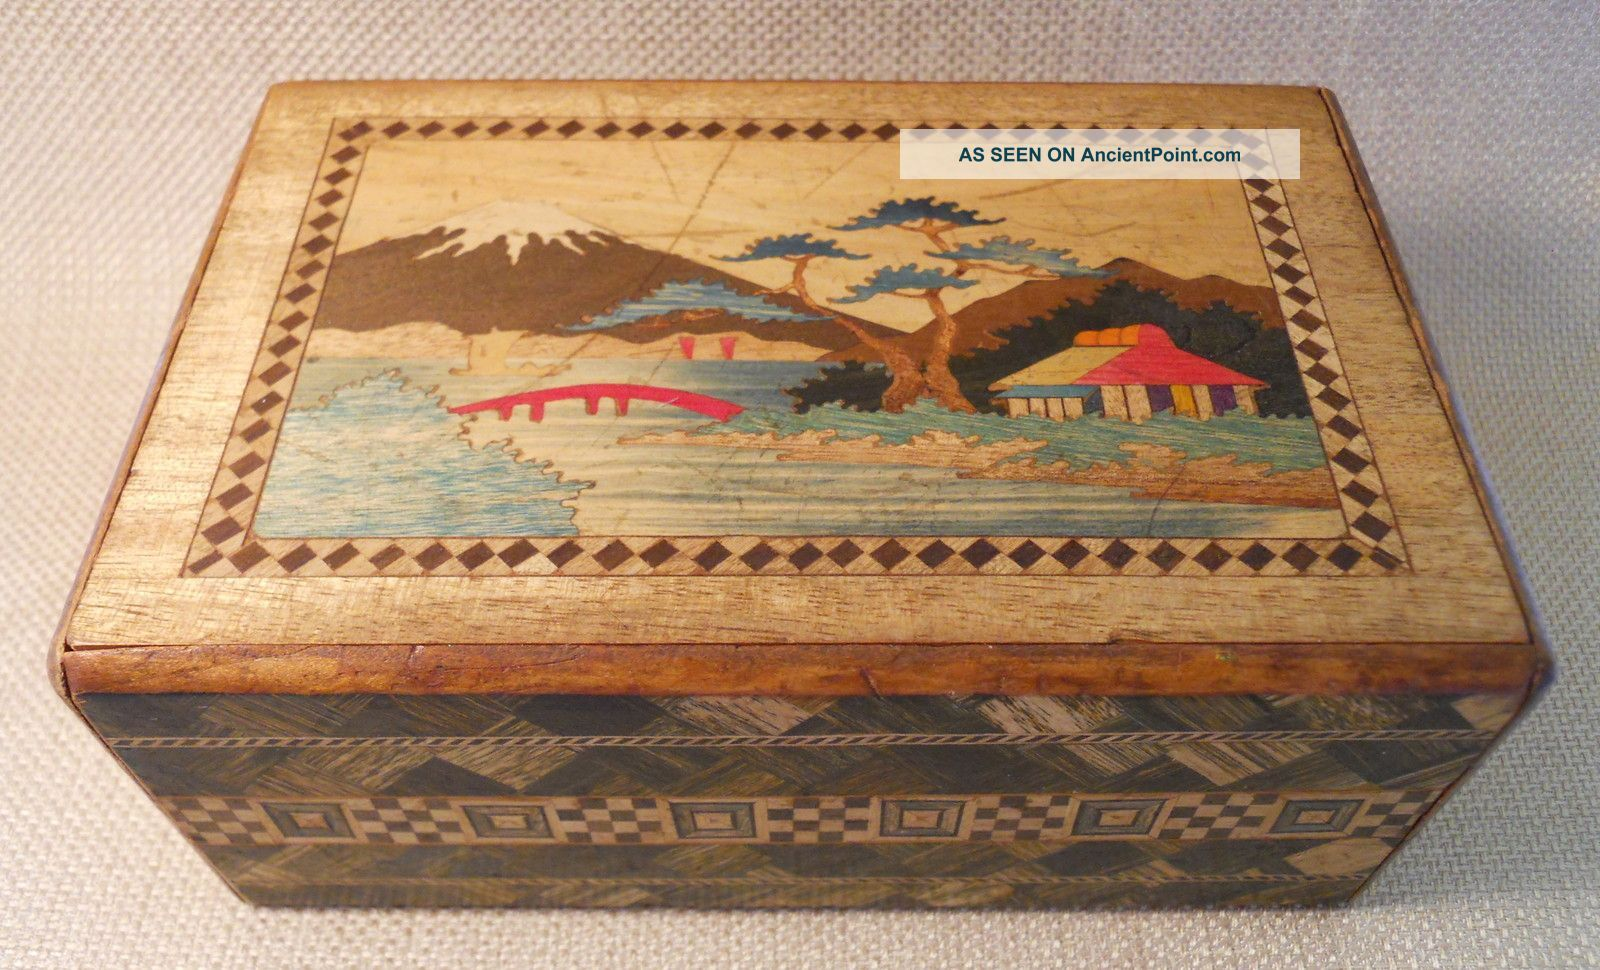 We Have A Few Vintage Japanese Puzzle Boxes Available For Sale